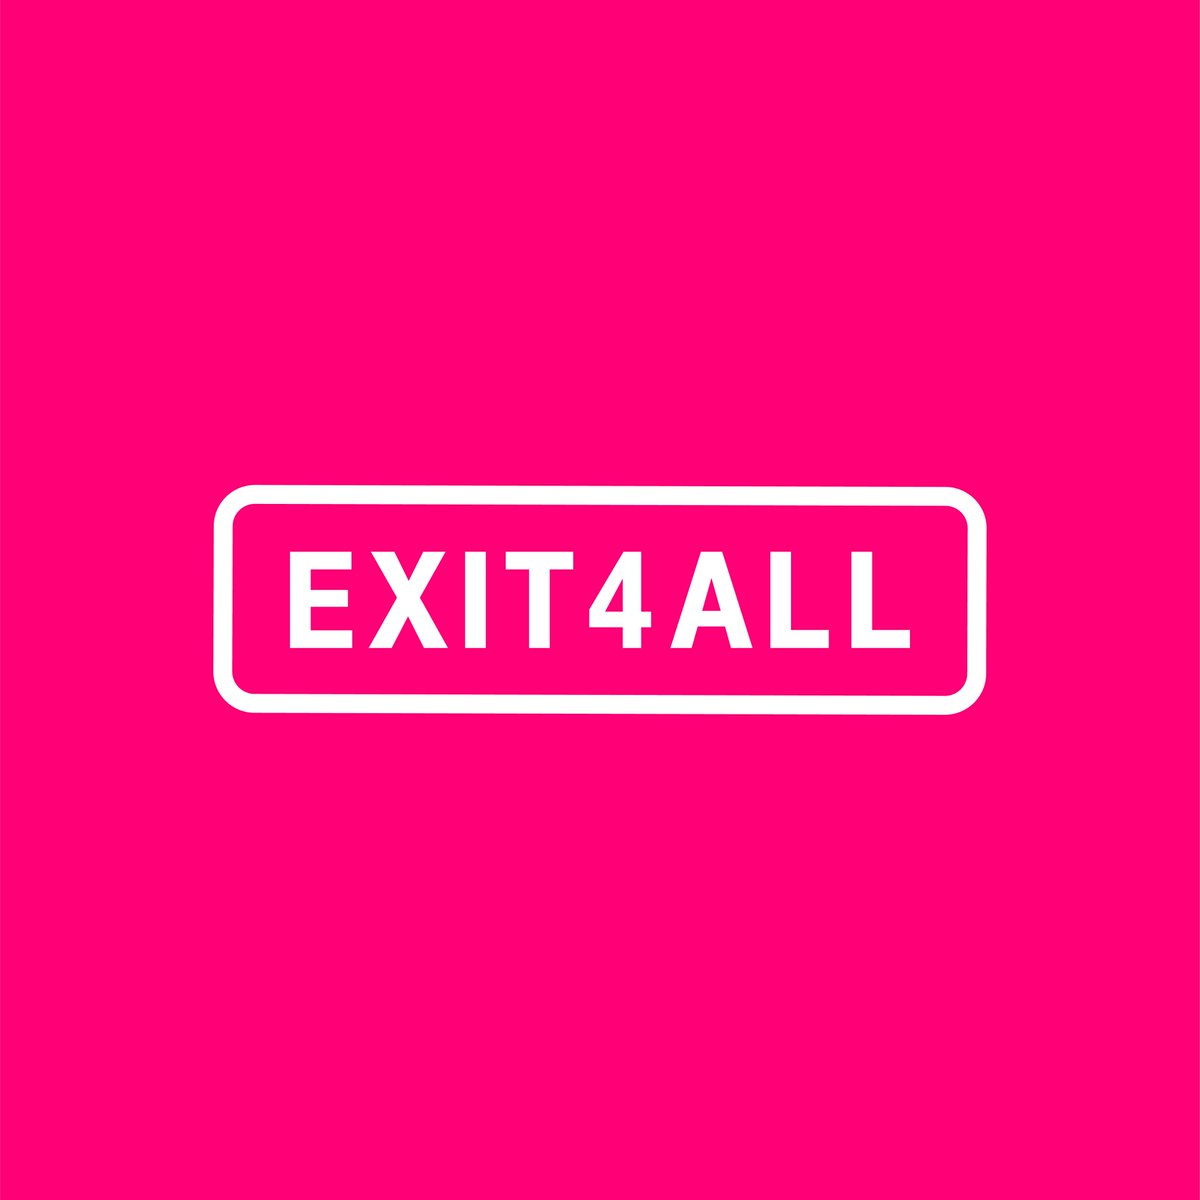 T-Mobile Nederland's photo on #xs4all